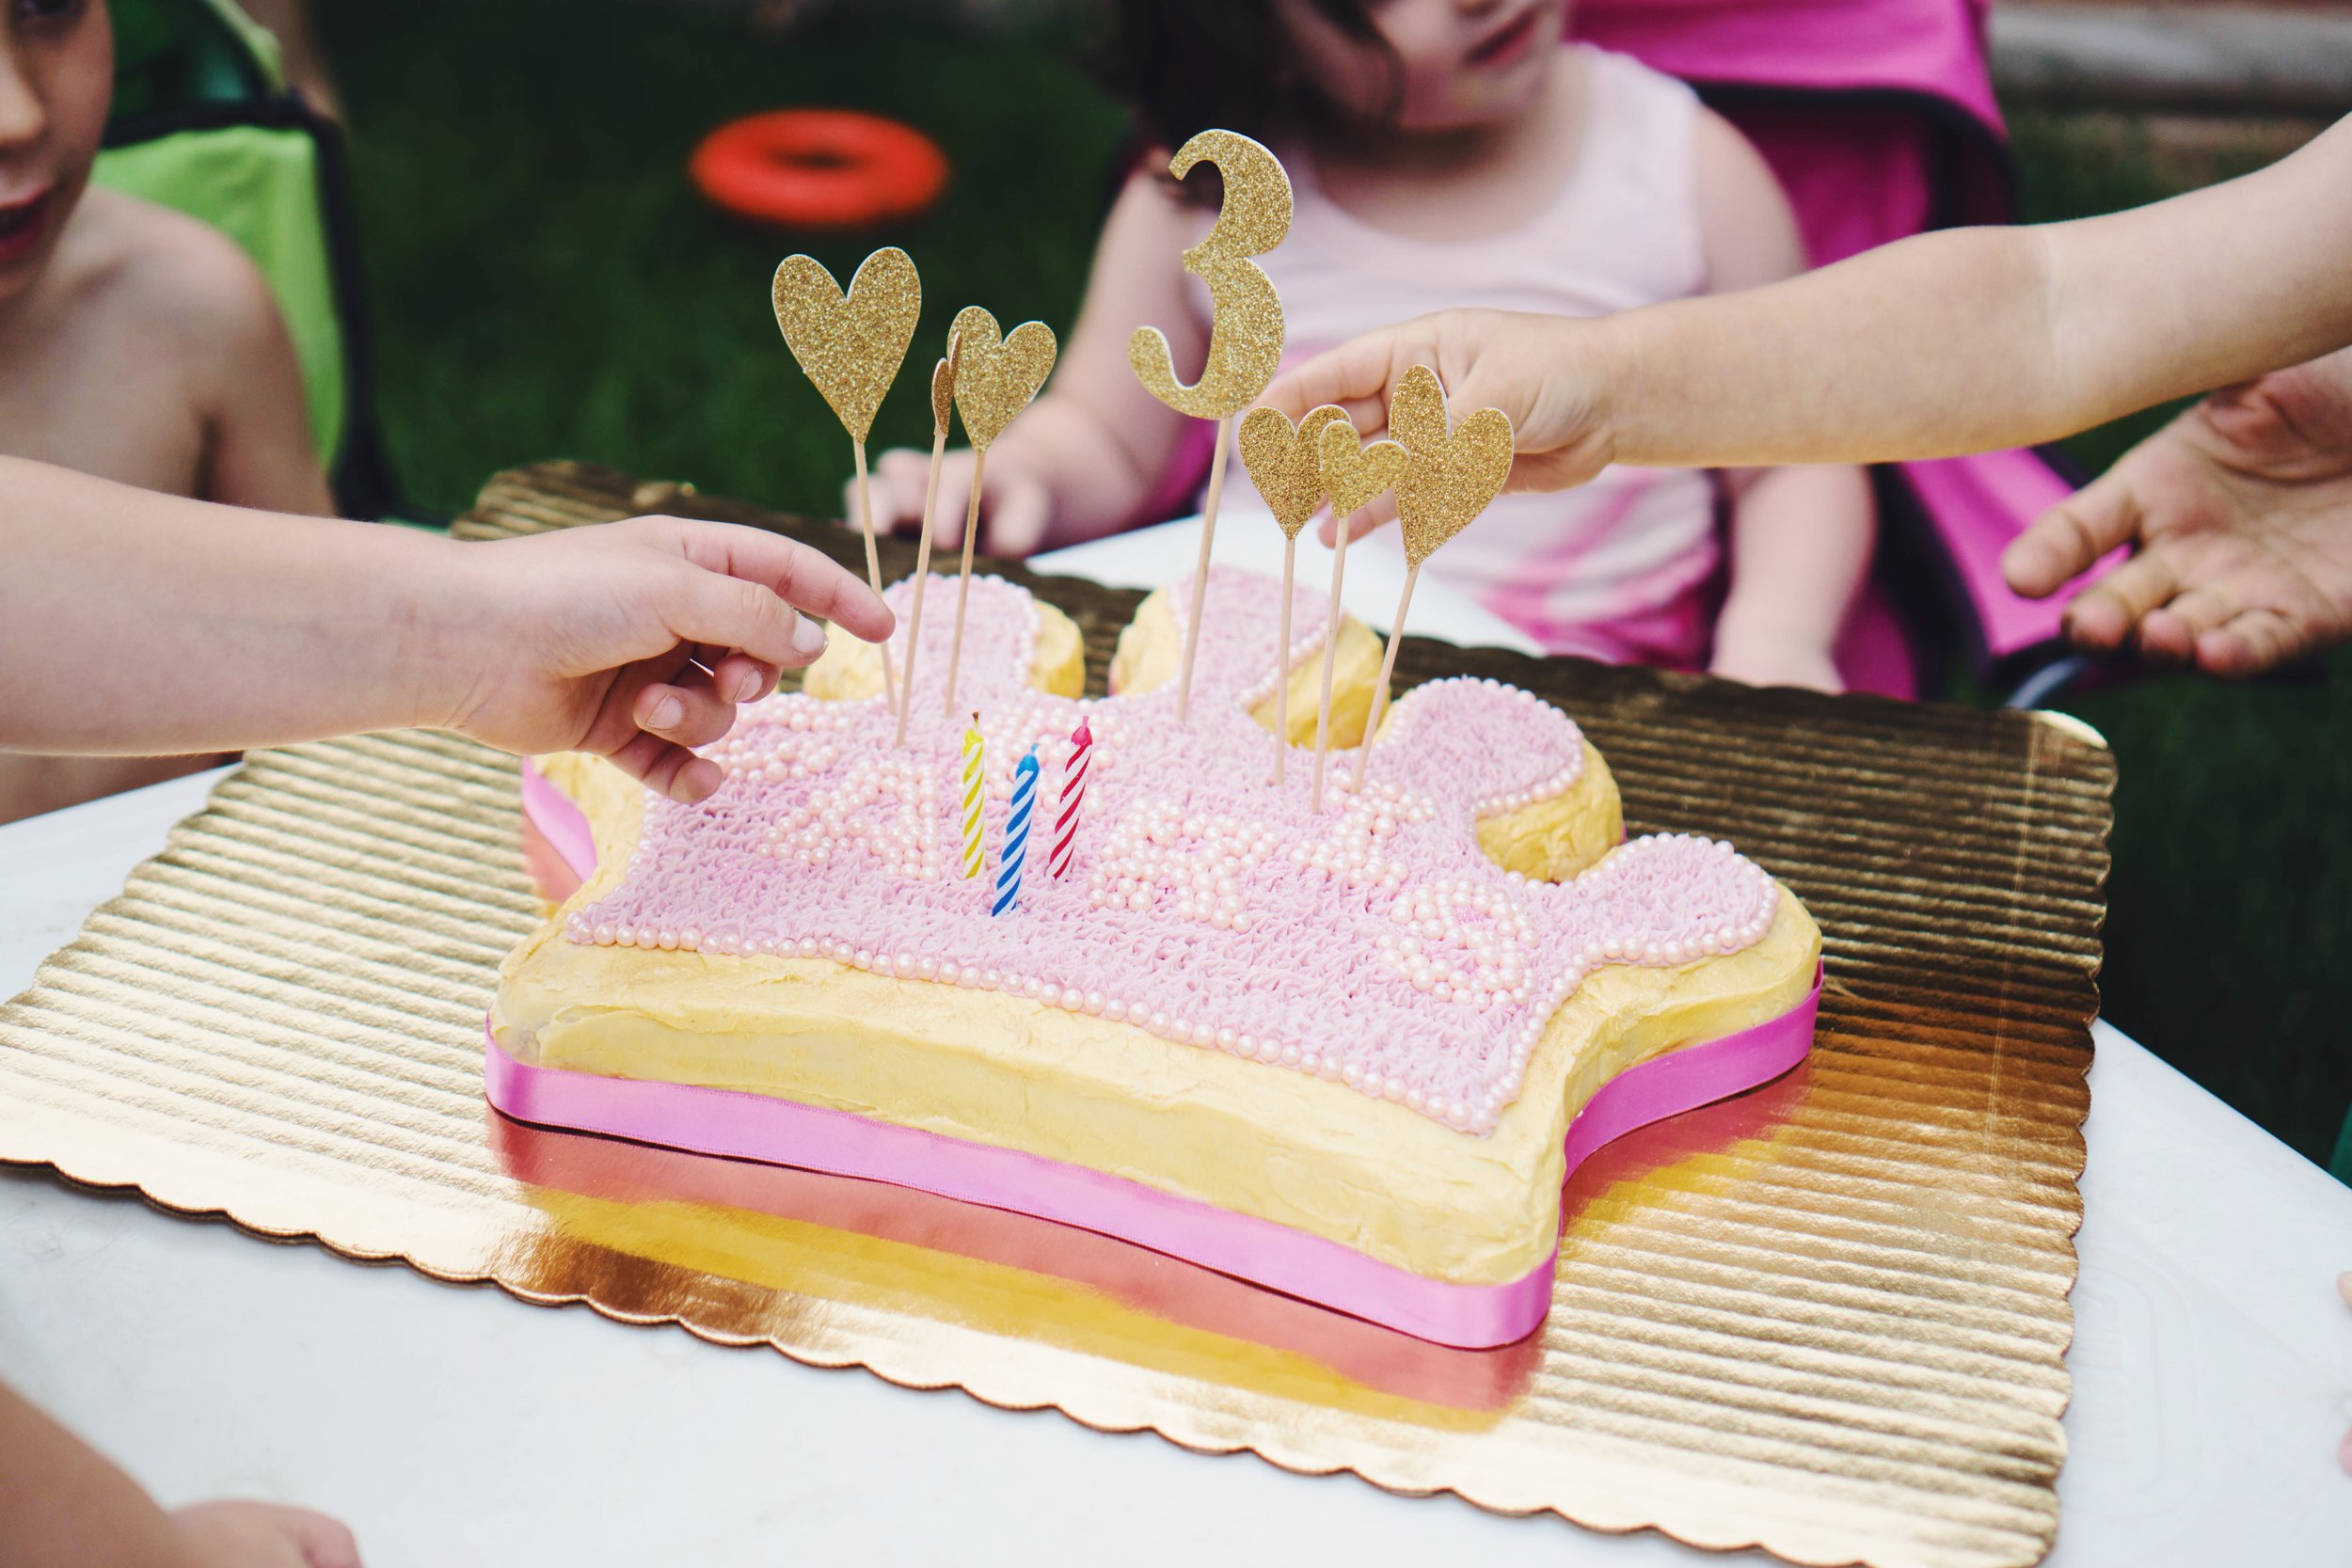 """<img src ="""" princess-and-knight-party.jpg alt =""""A- princess-and- knight-birthday-party-inspiration-princess cake - party-themed-food-activites-decorations"""""""